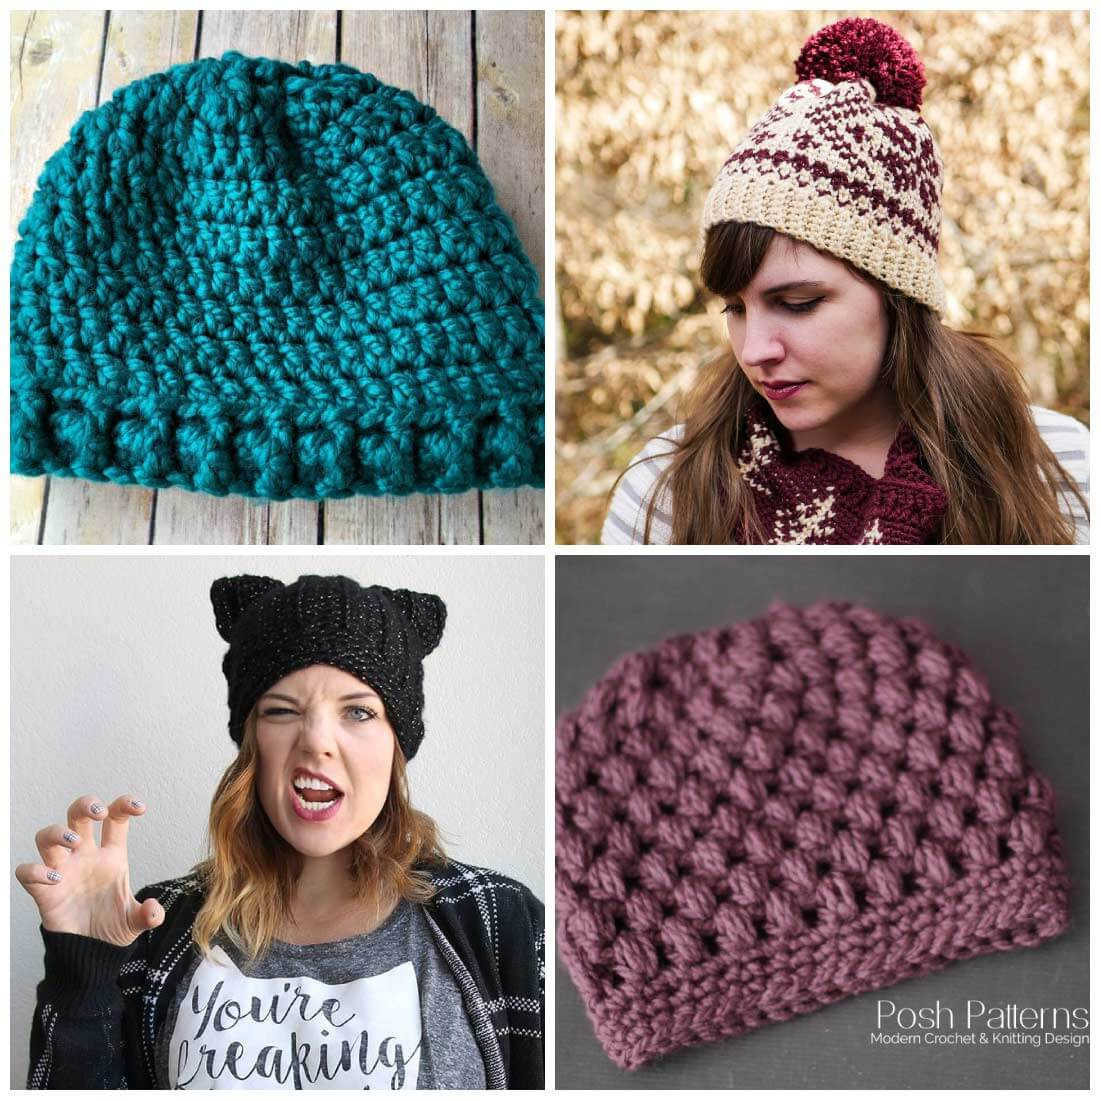 free crochet hat patterns | free crochet patterns | crochet patterns | use  these XFGONRC